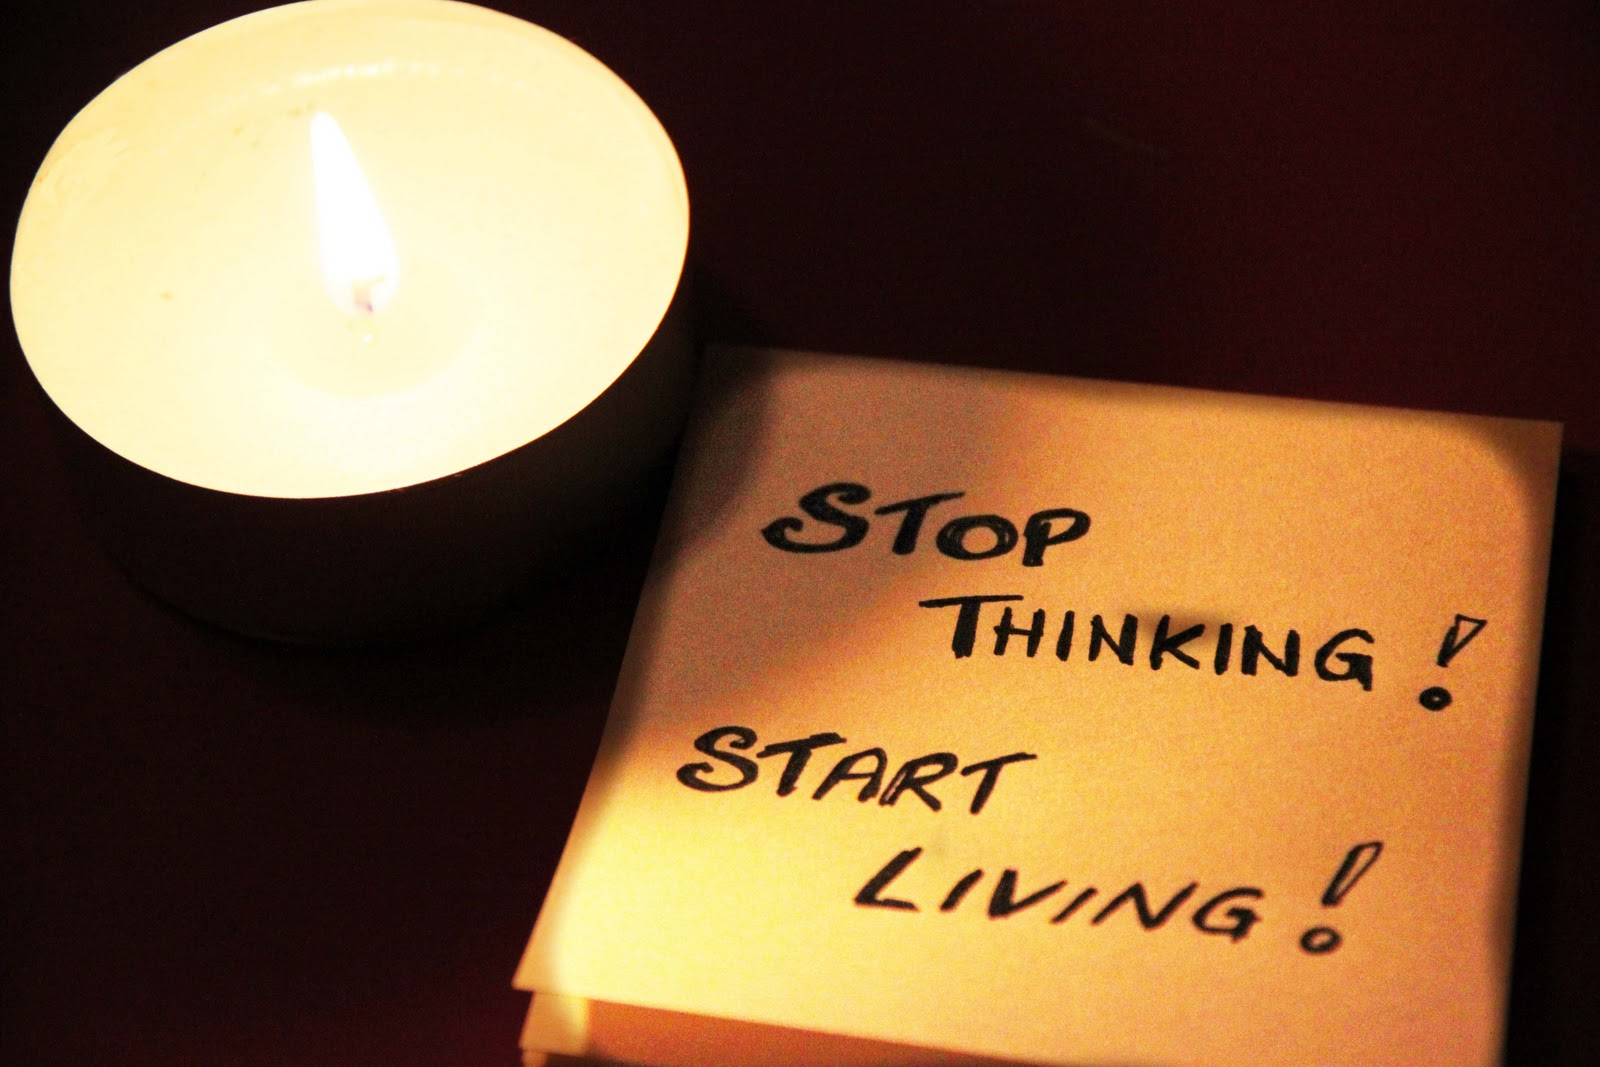 Stop thinking more